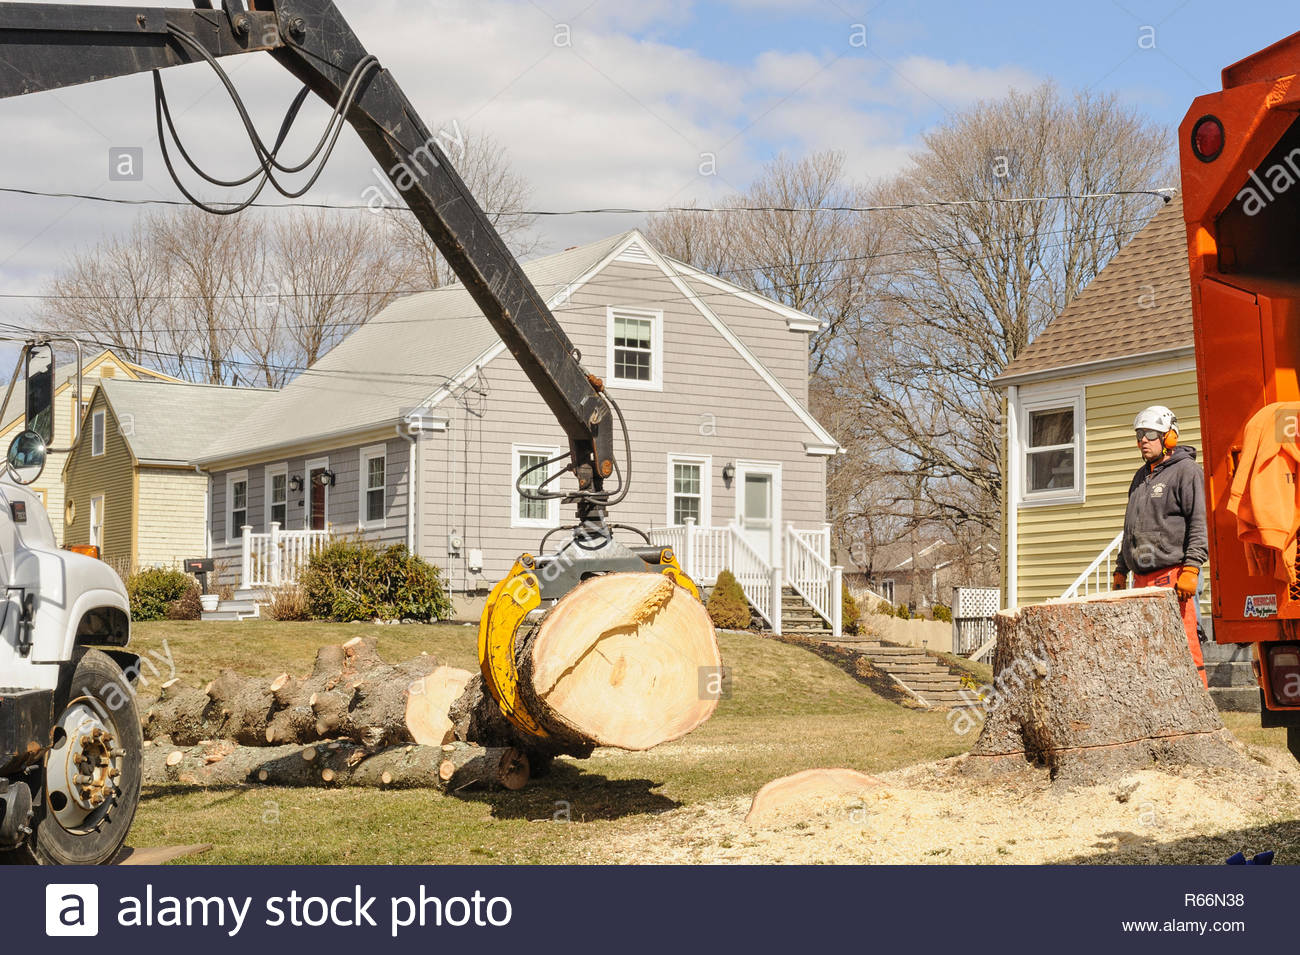 Somerset, Massachusetts, USA - March 31, 2015: Section of thick trunk of downed Norway Spruce tree being lifted toward truck for removal - Stock Image